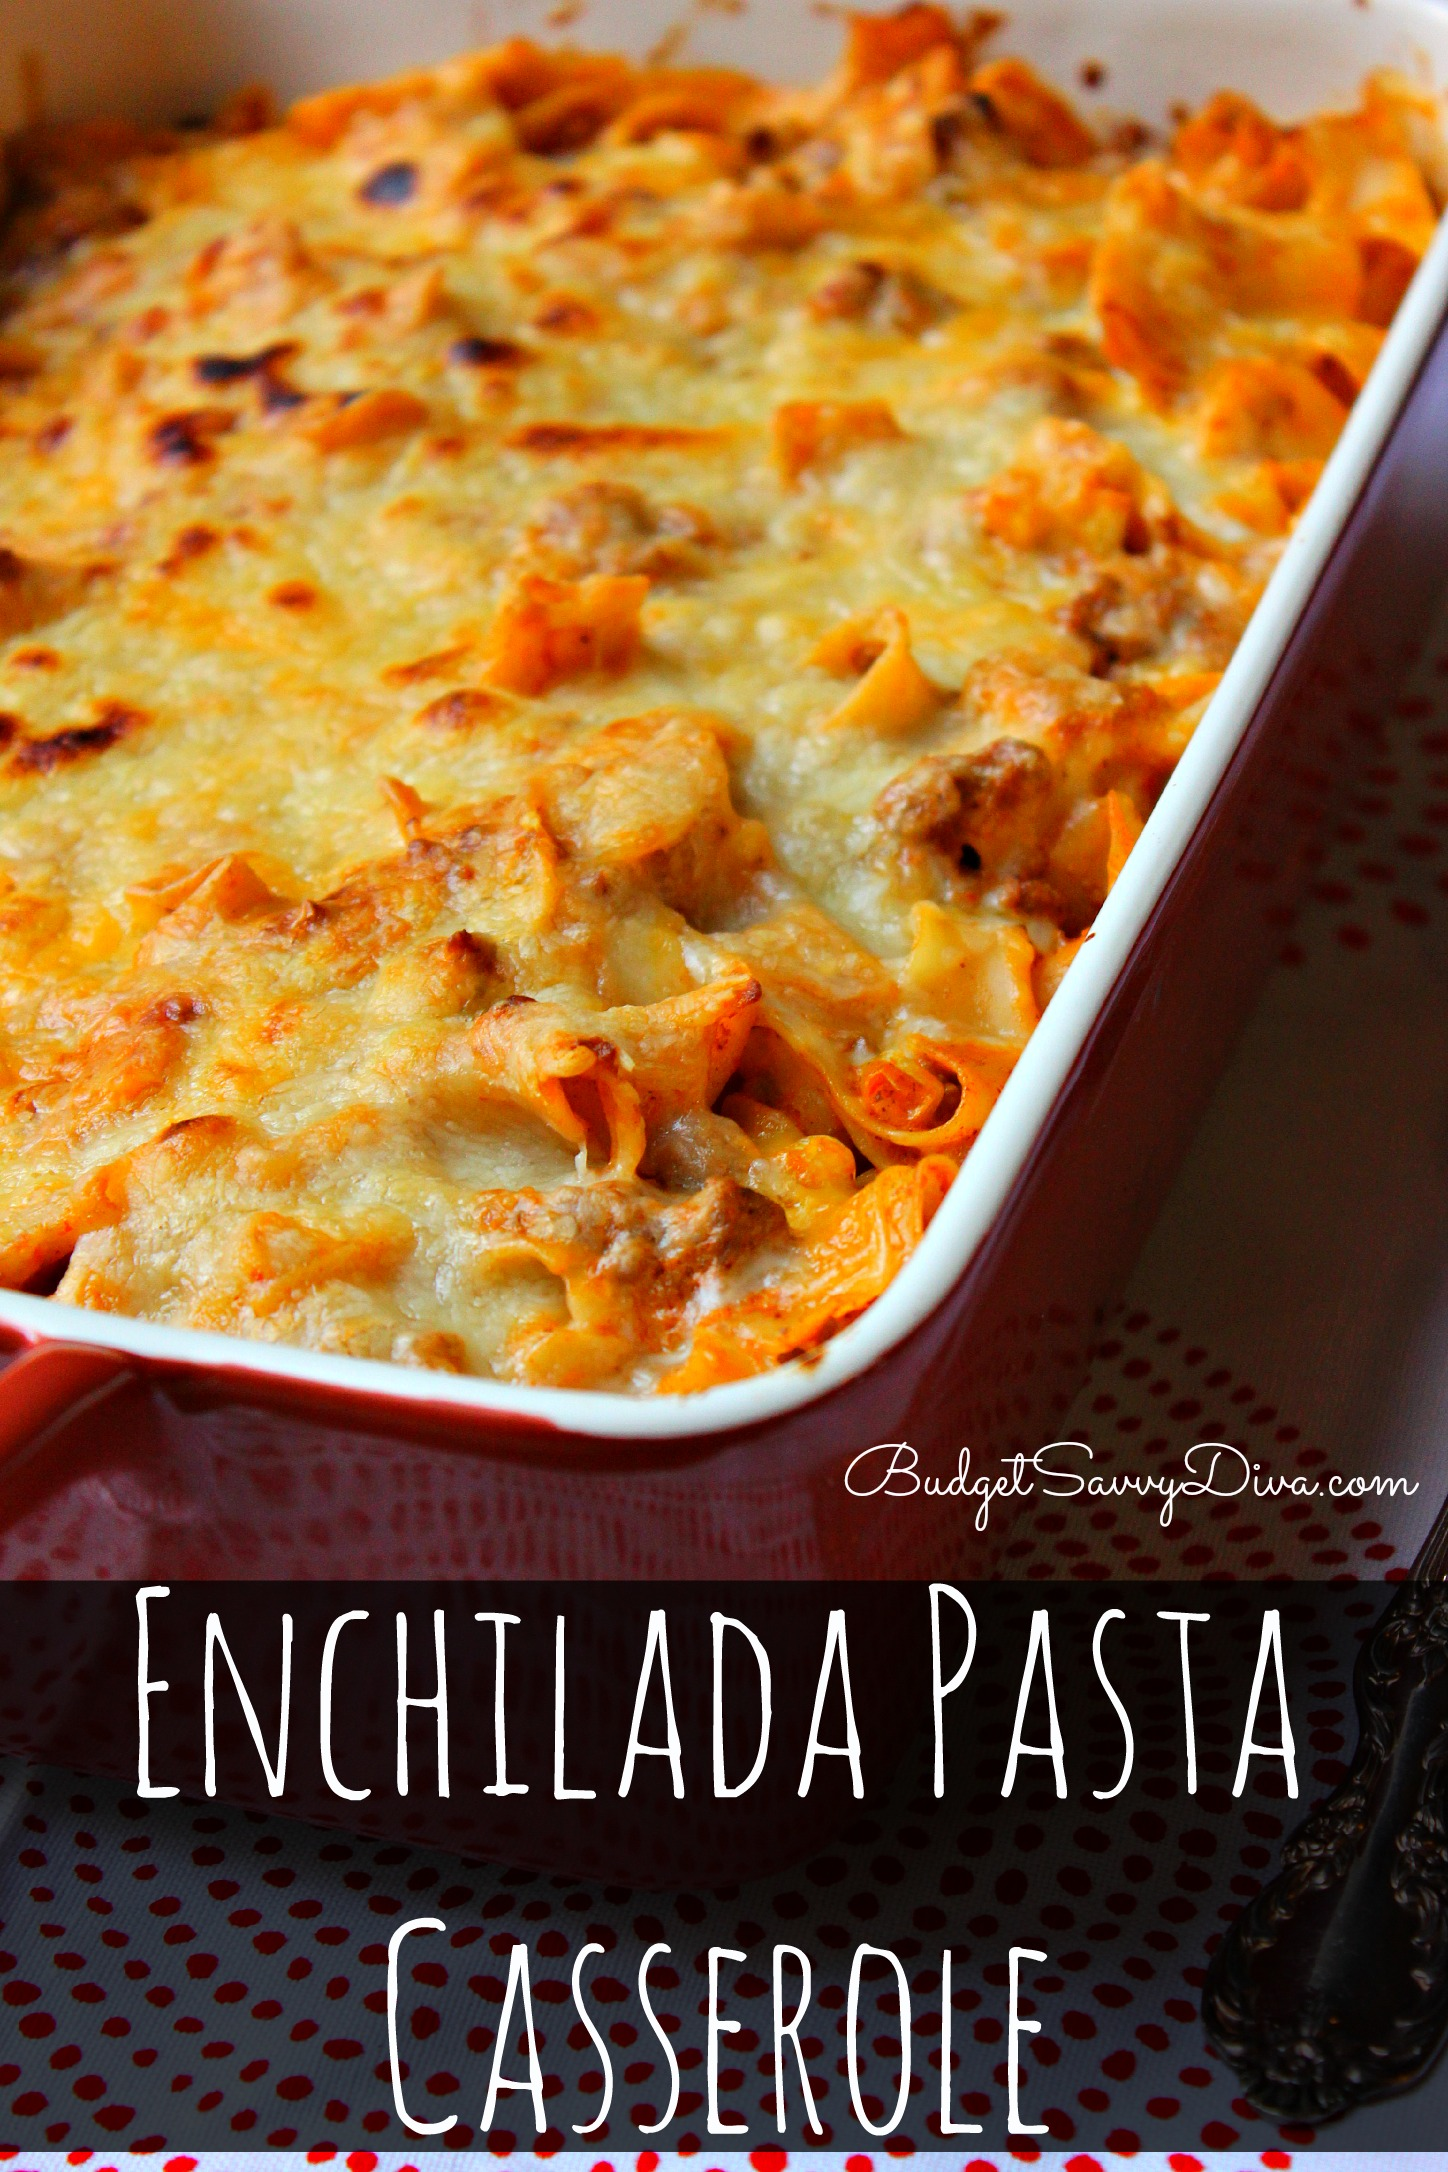 10 Easy And Delicious Casserole Recipes Budget Savvy Diva